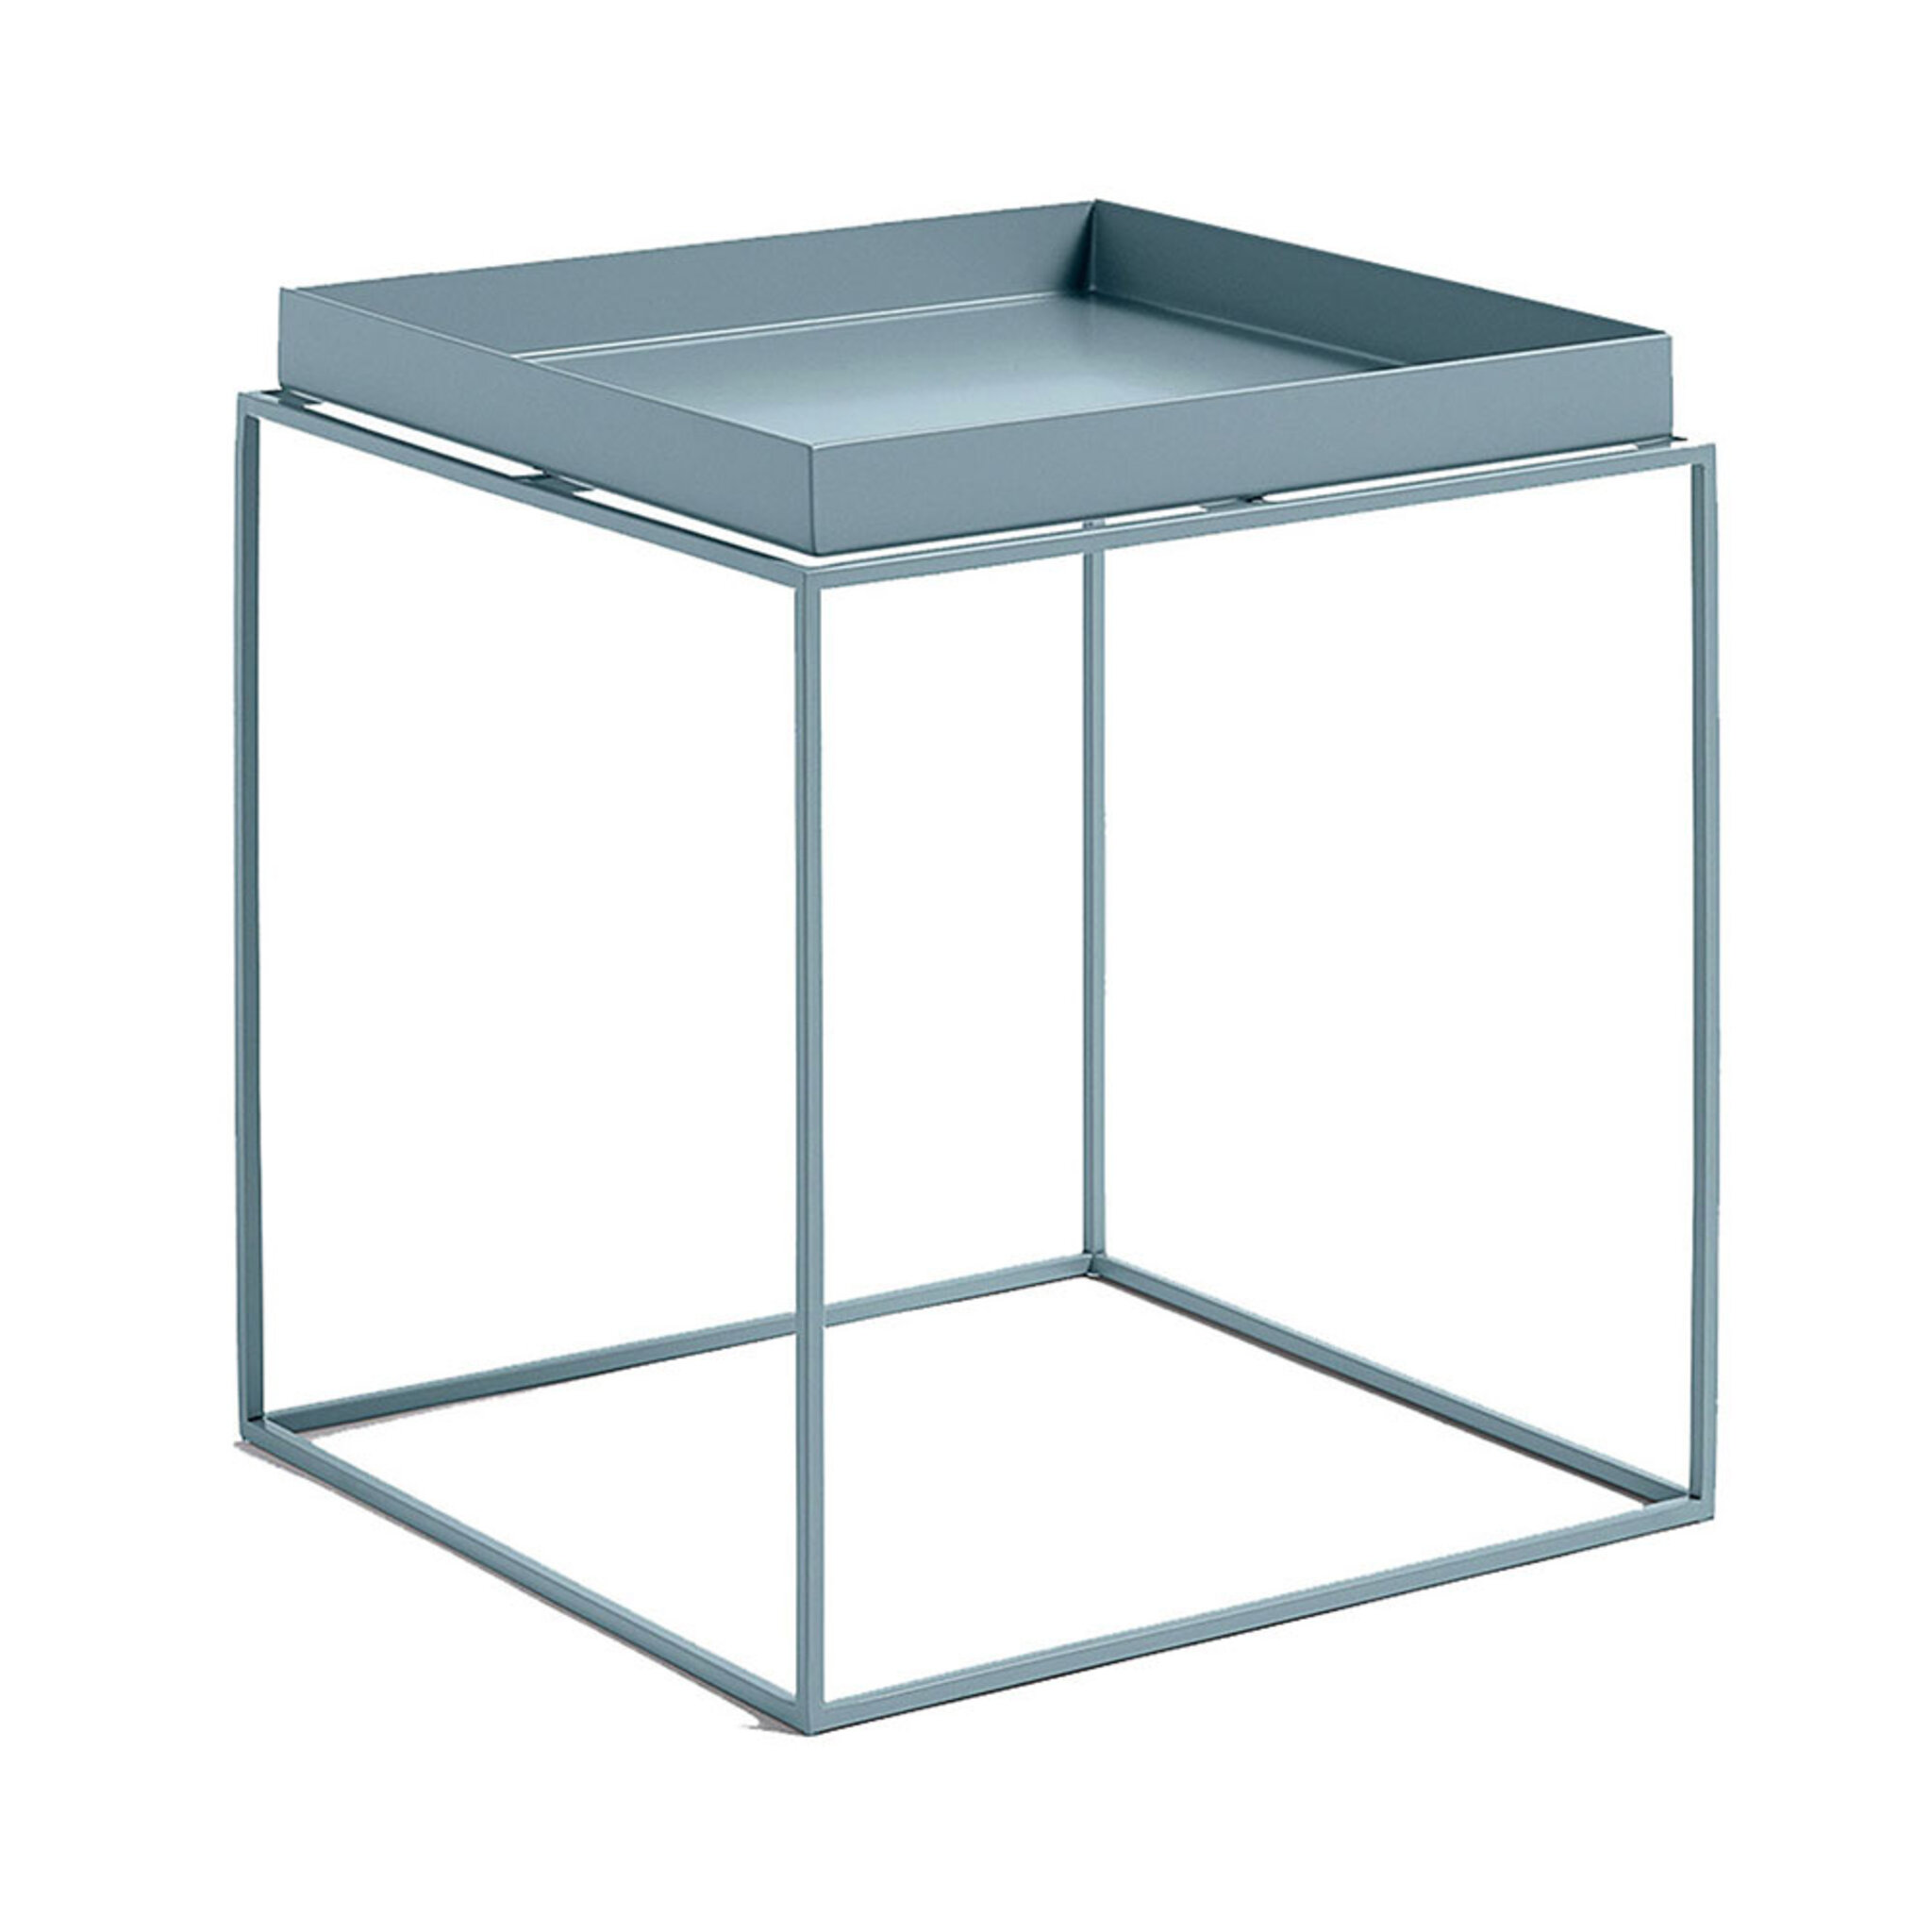 Tray Table 40×40 cm